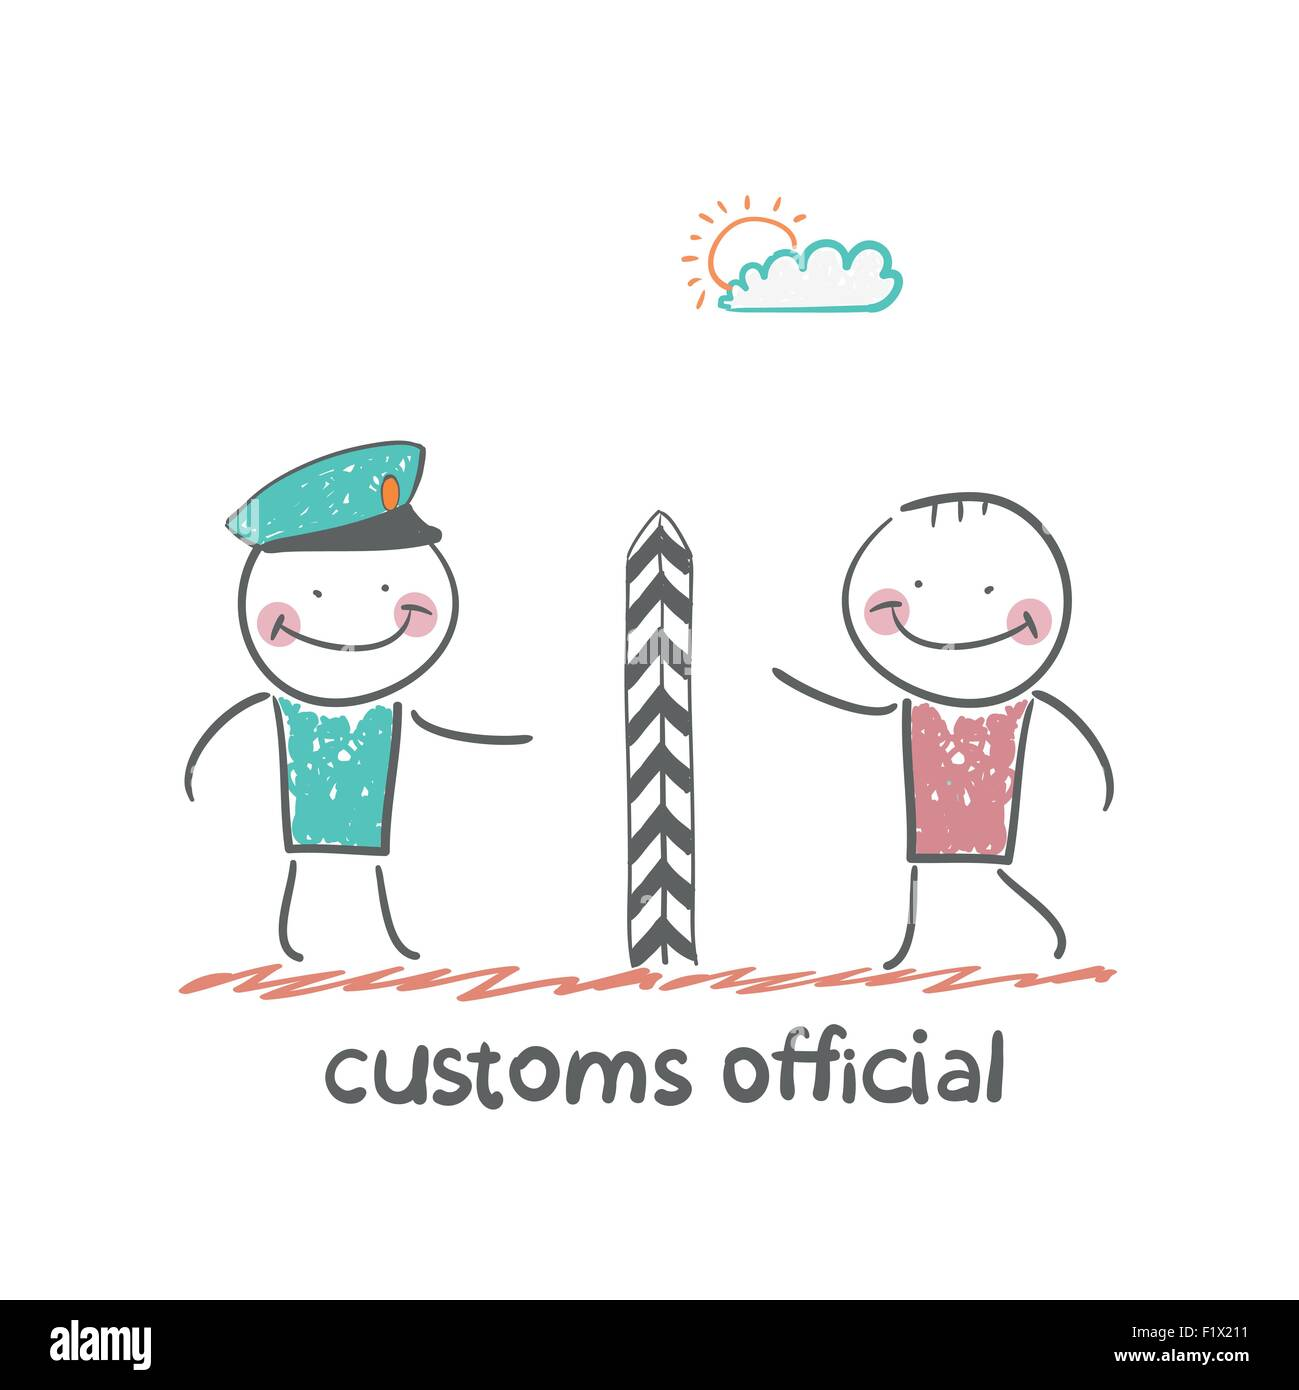 customs officer. Fun cartoon style illustration. The situation of life. - Stock Image